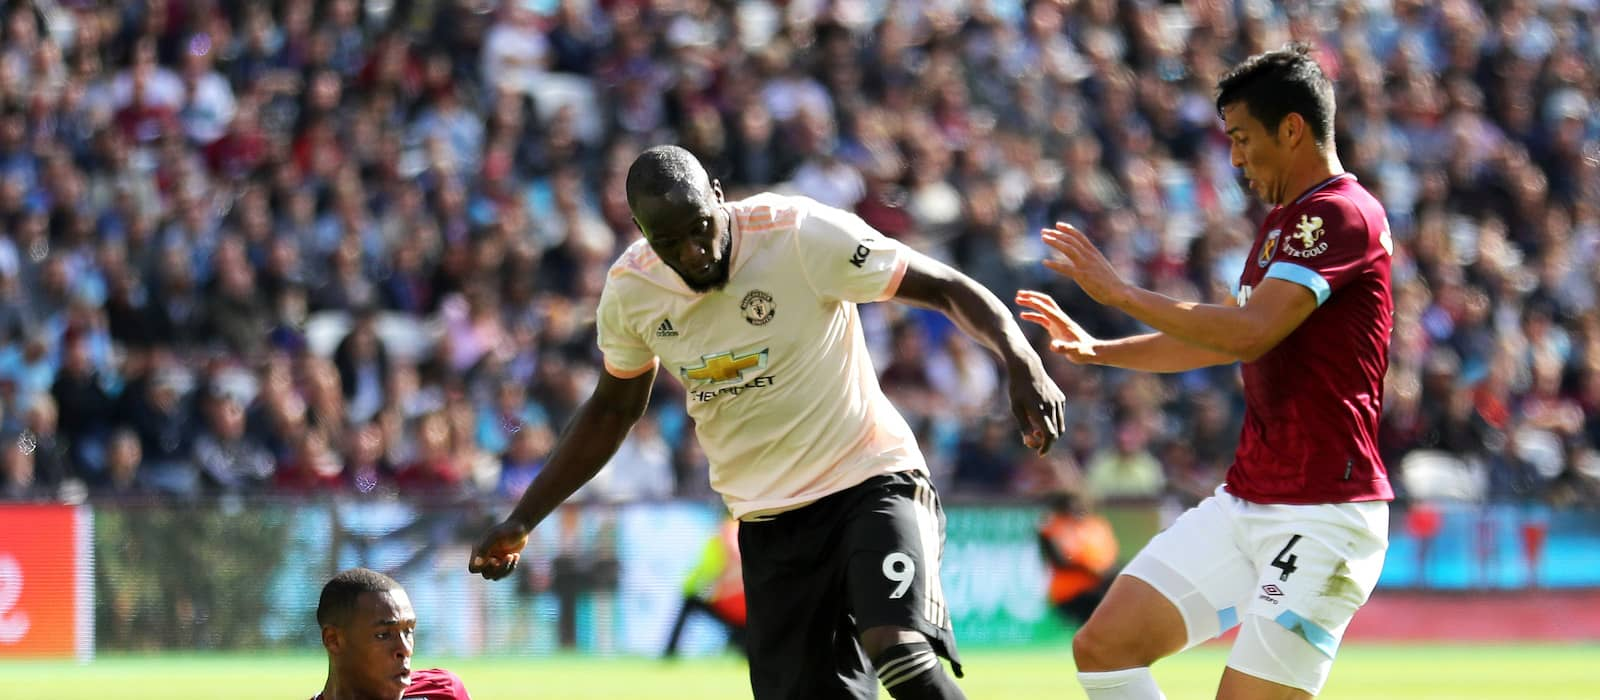 Rio Ferdinand: Manchester United did not work hard enough against West Ham United